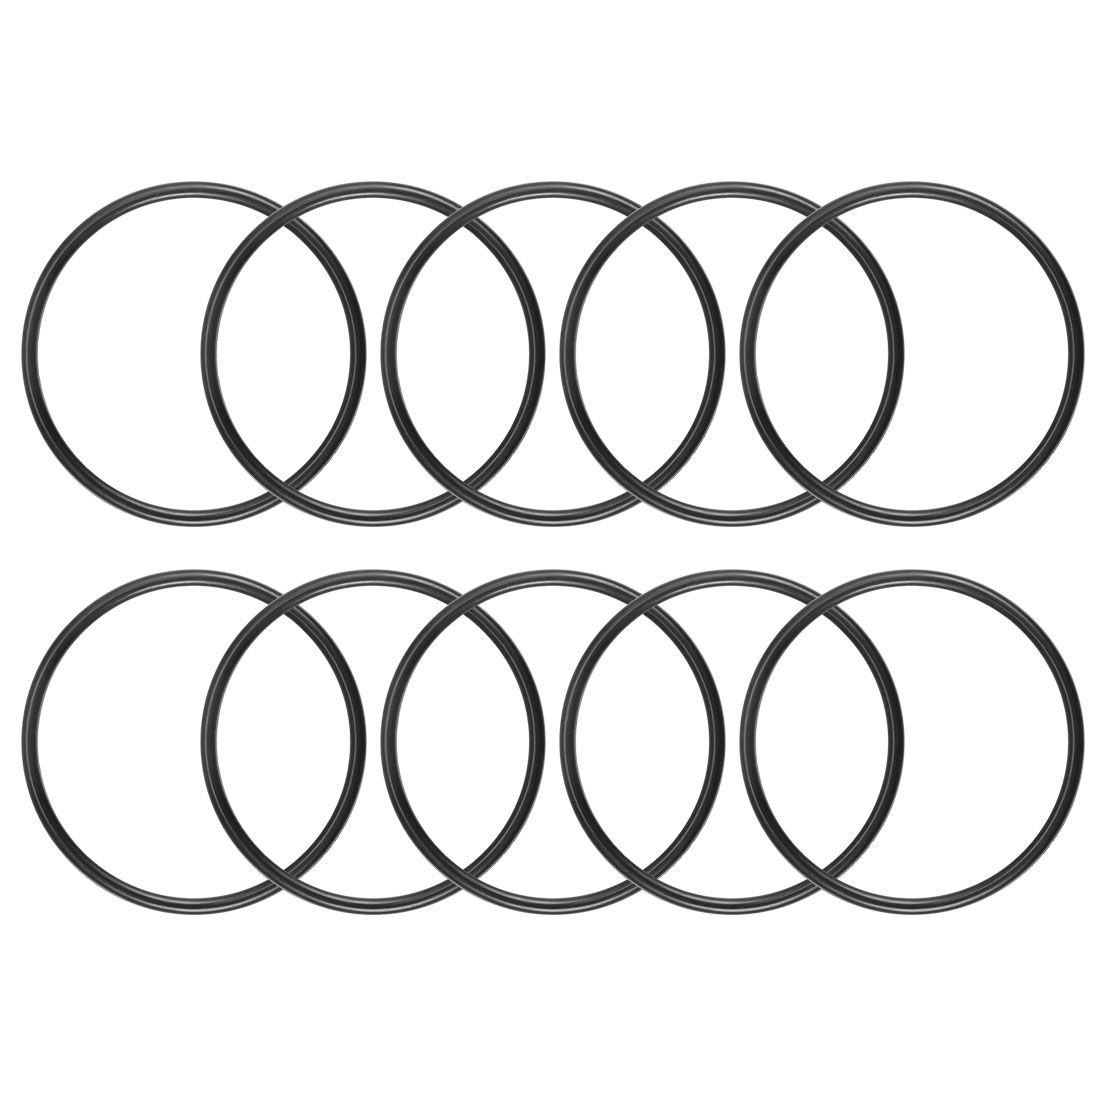 O-Rings Nitrile Rubber 30mm x 33.6mm x 1.8mm Round Seal Gasket 10Pcs